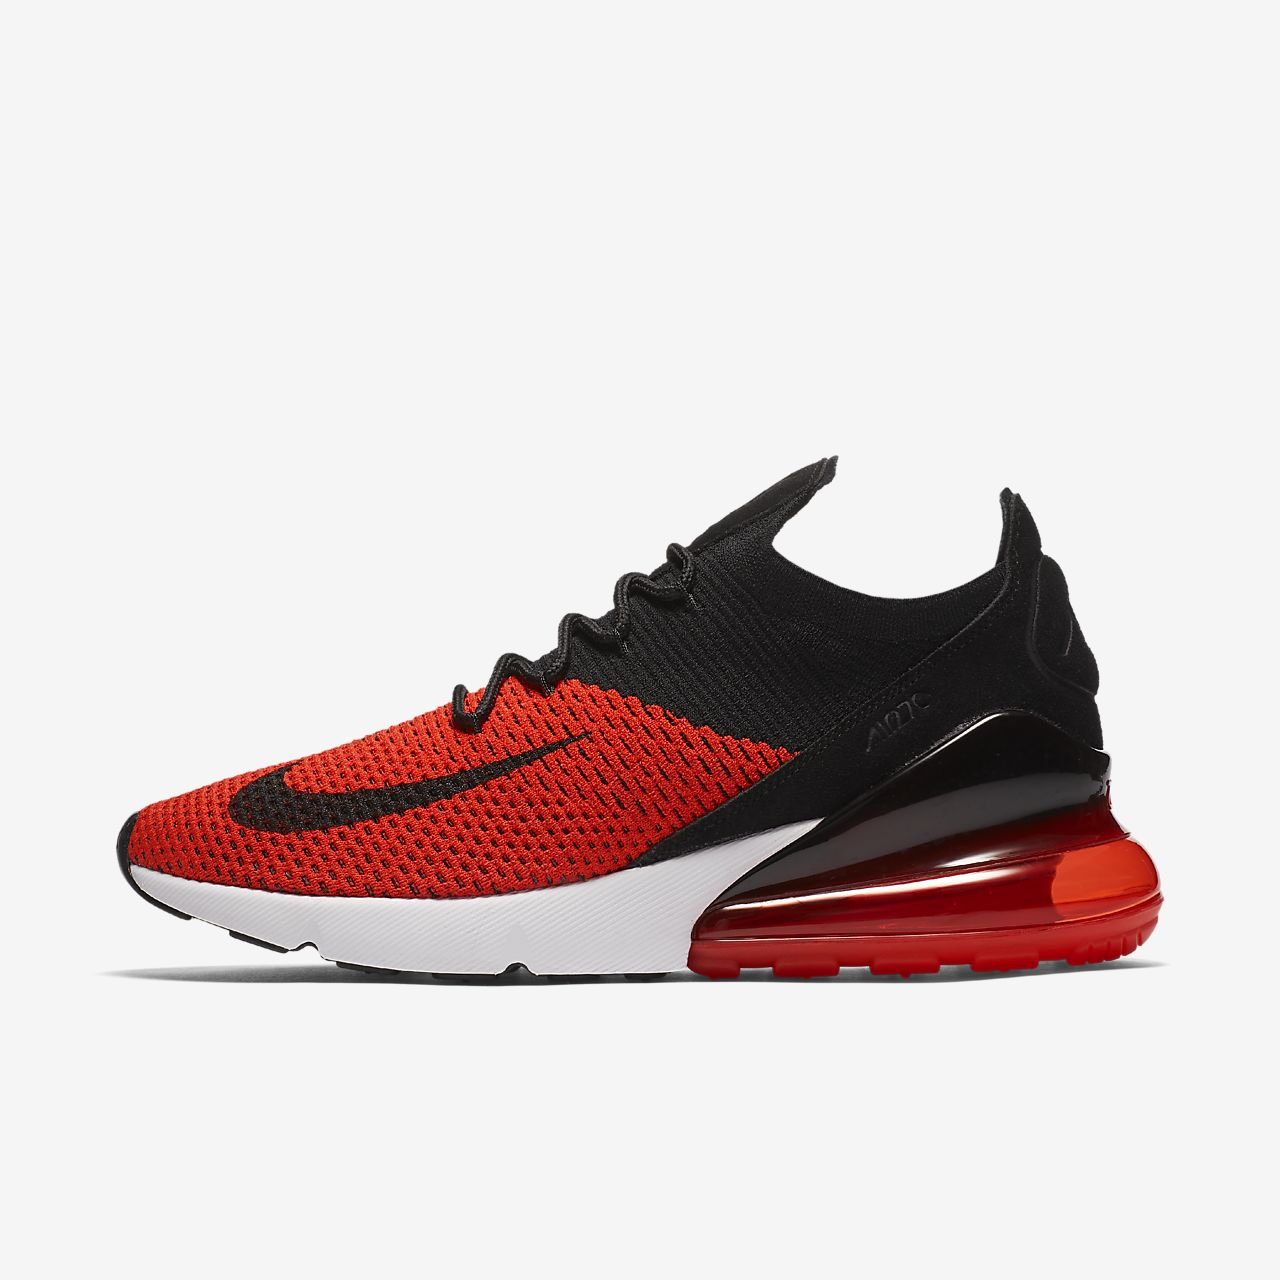 finest selection 5fe92 e9ea7 ... Nike Air Max 270 Flyknit Men s Shoe